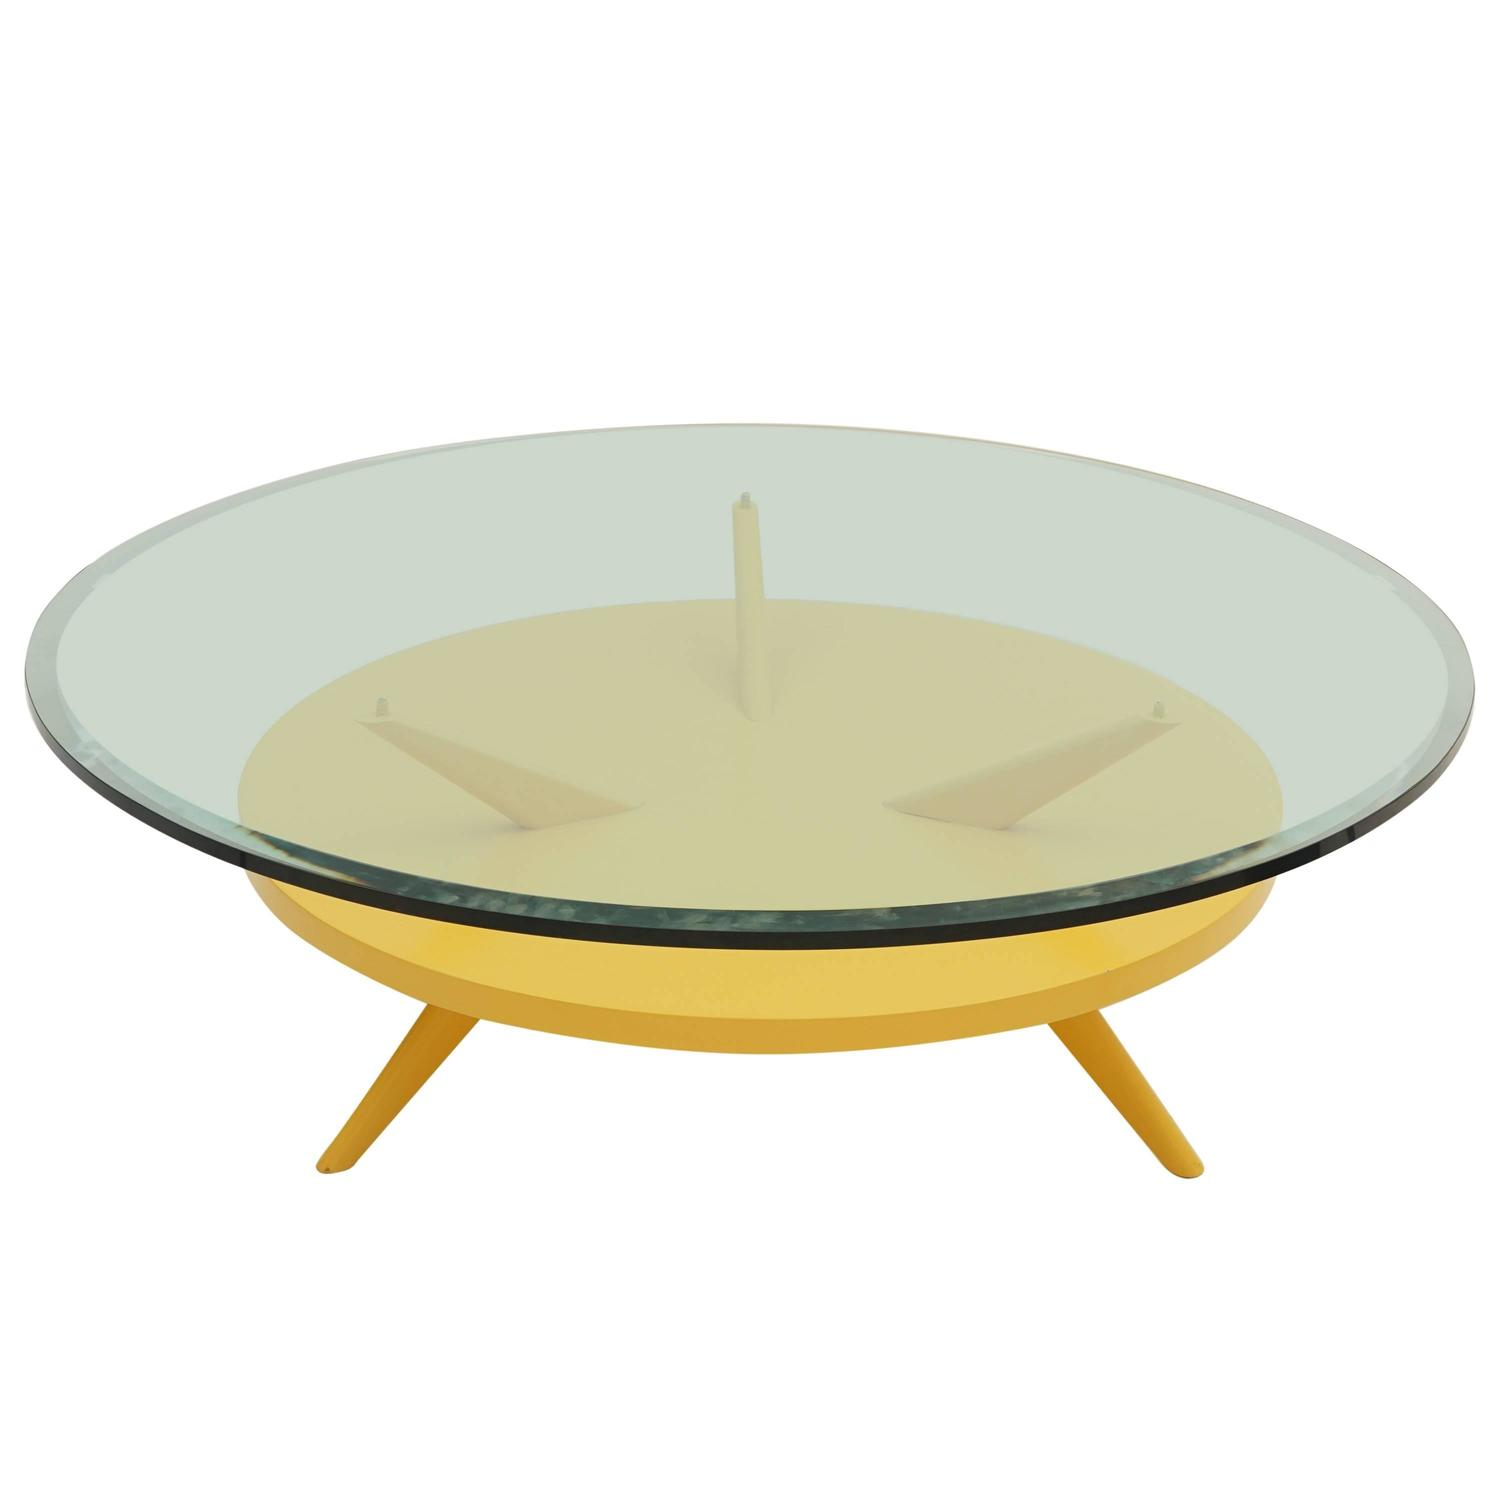 Vintage Lemon Drop Yellow Coffee Table For Sale at 1stdibs